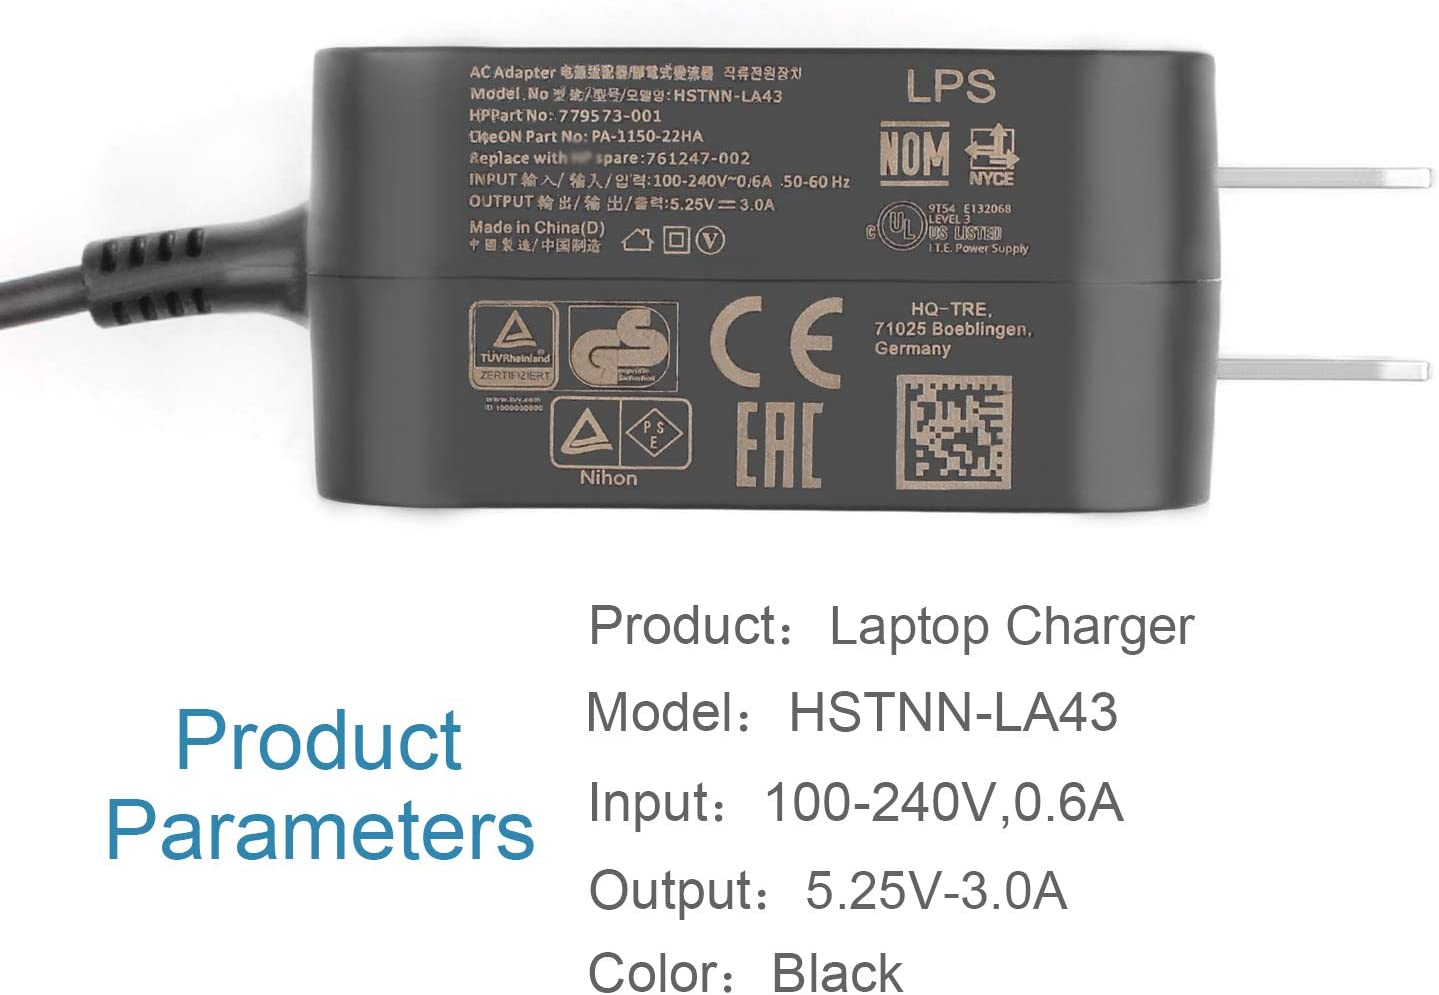 AC Doctor INC Chromebook 11 G1 G2 Charger for HP HSTNN-LA43 PA-1150-22HA 779573-001 761247-002 792619-001 792584-001 Chromebook 11 G1 G2 Micro USB Adapter Charger